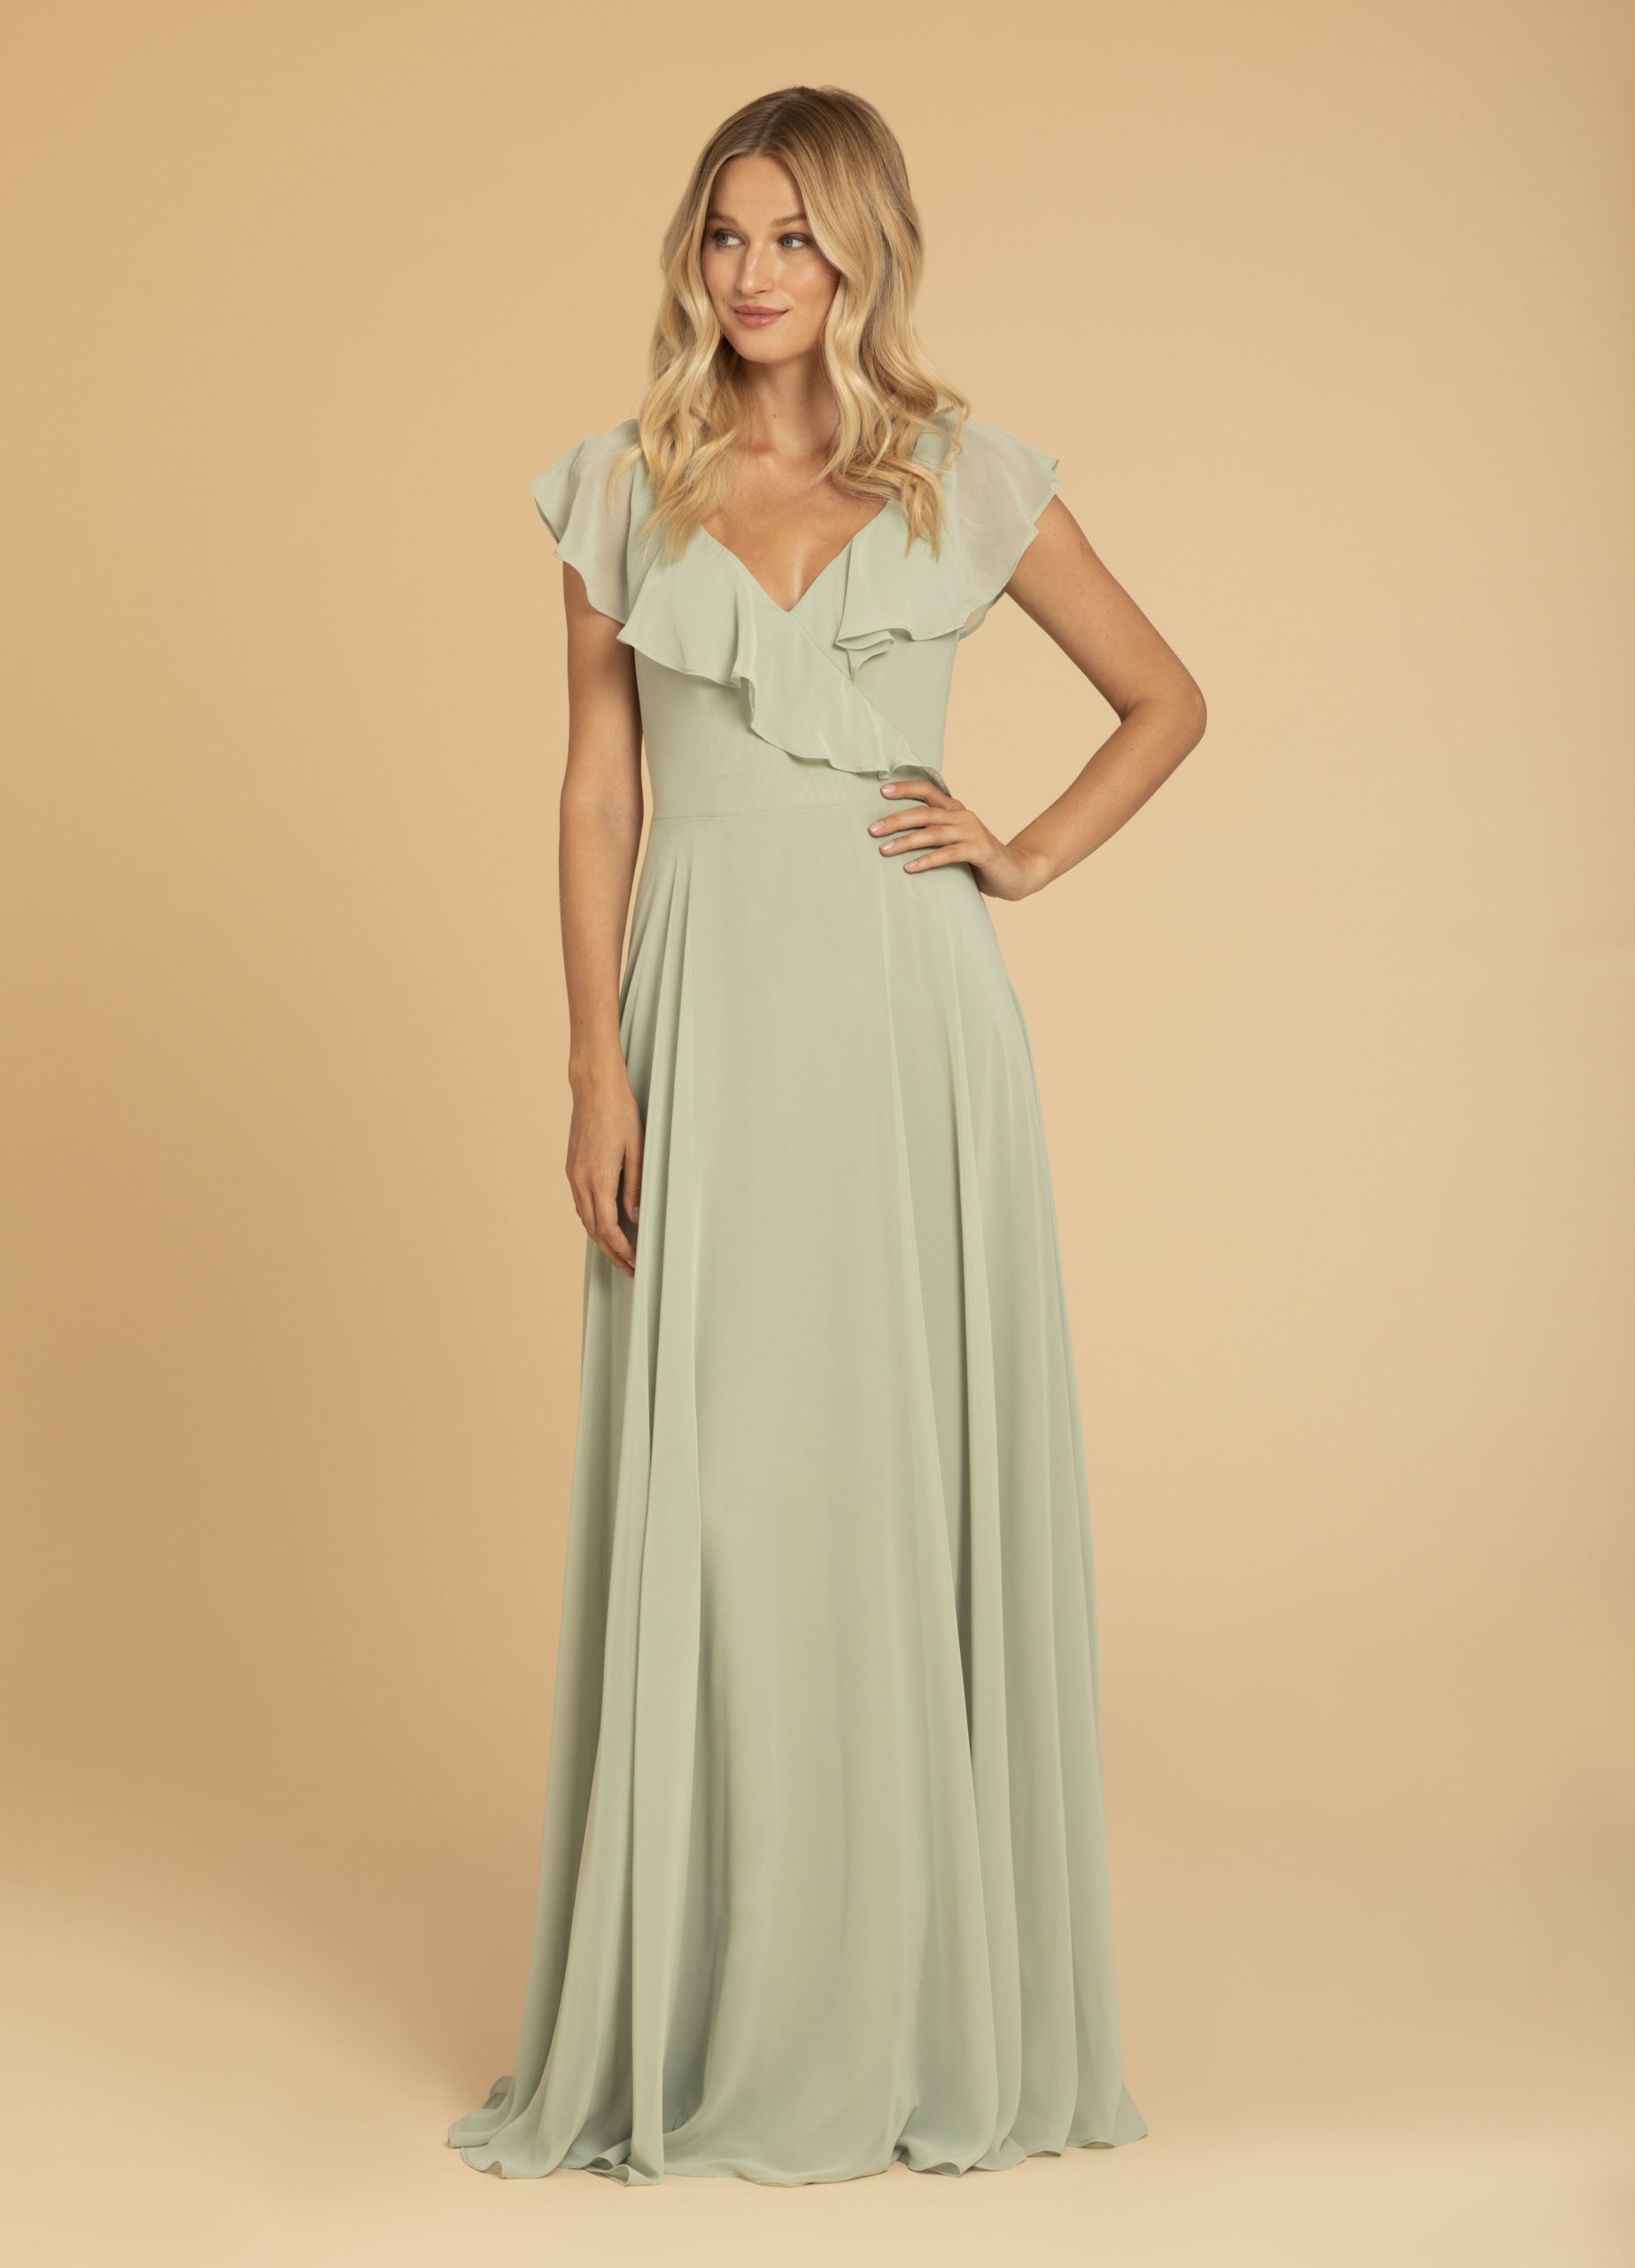 Bridesmaid Dresses in 2021 hayley paige